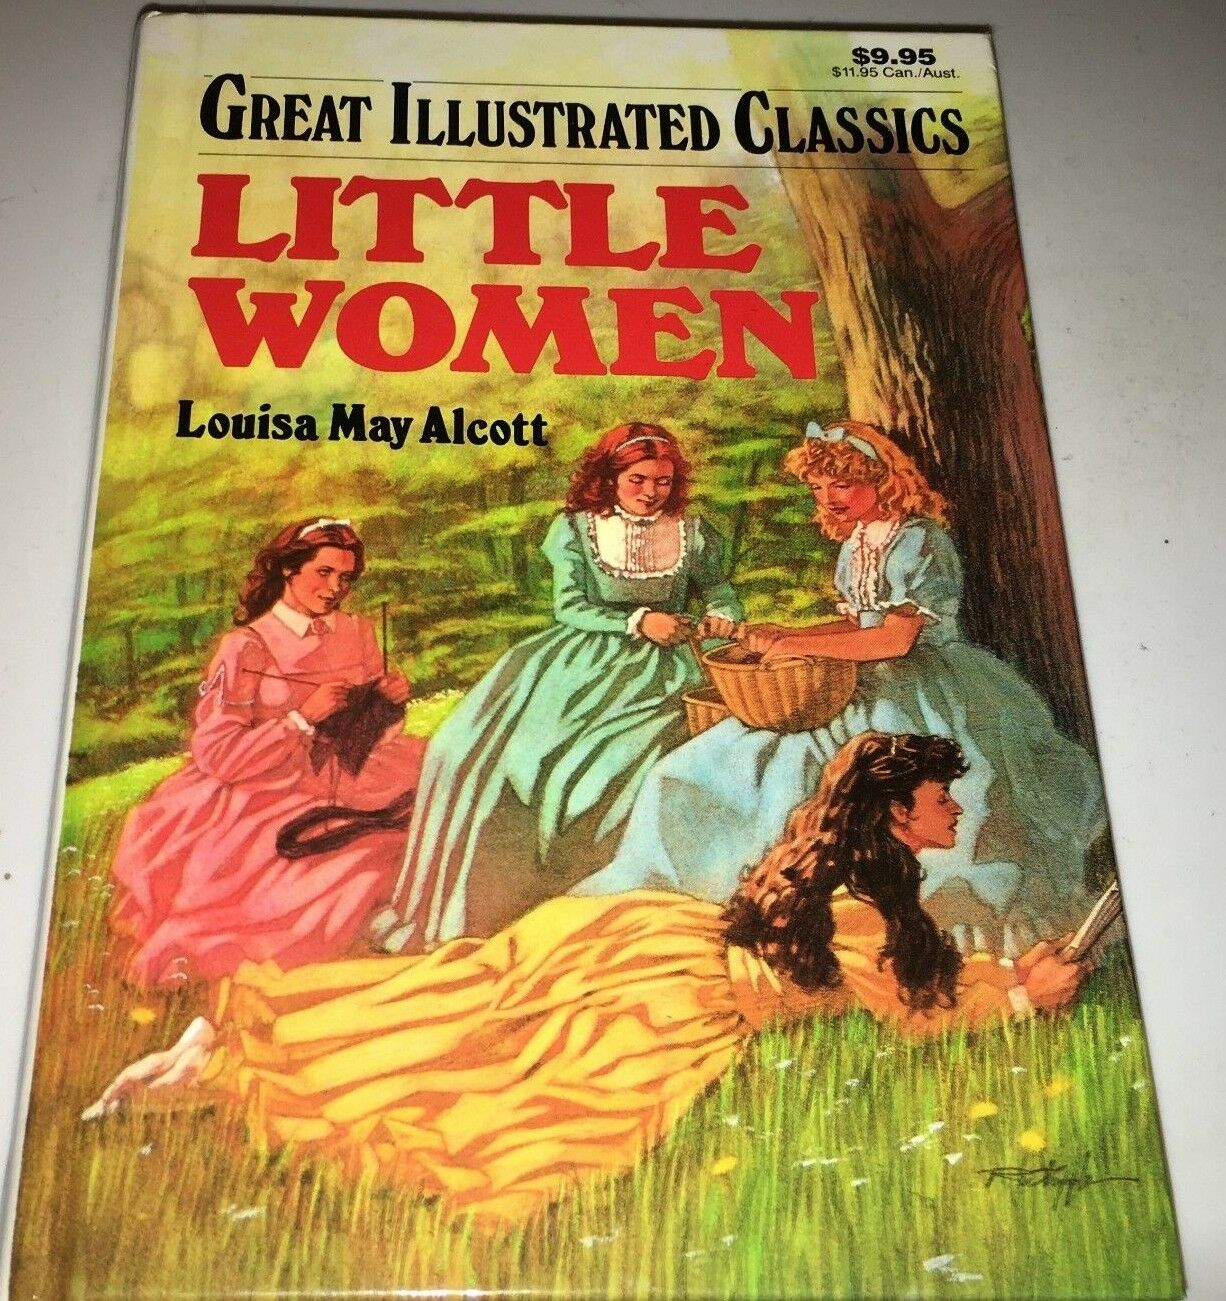 Great Illustrated Classics Little Women Vol. 4 1989, Hardcover 9L - $3.67